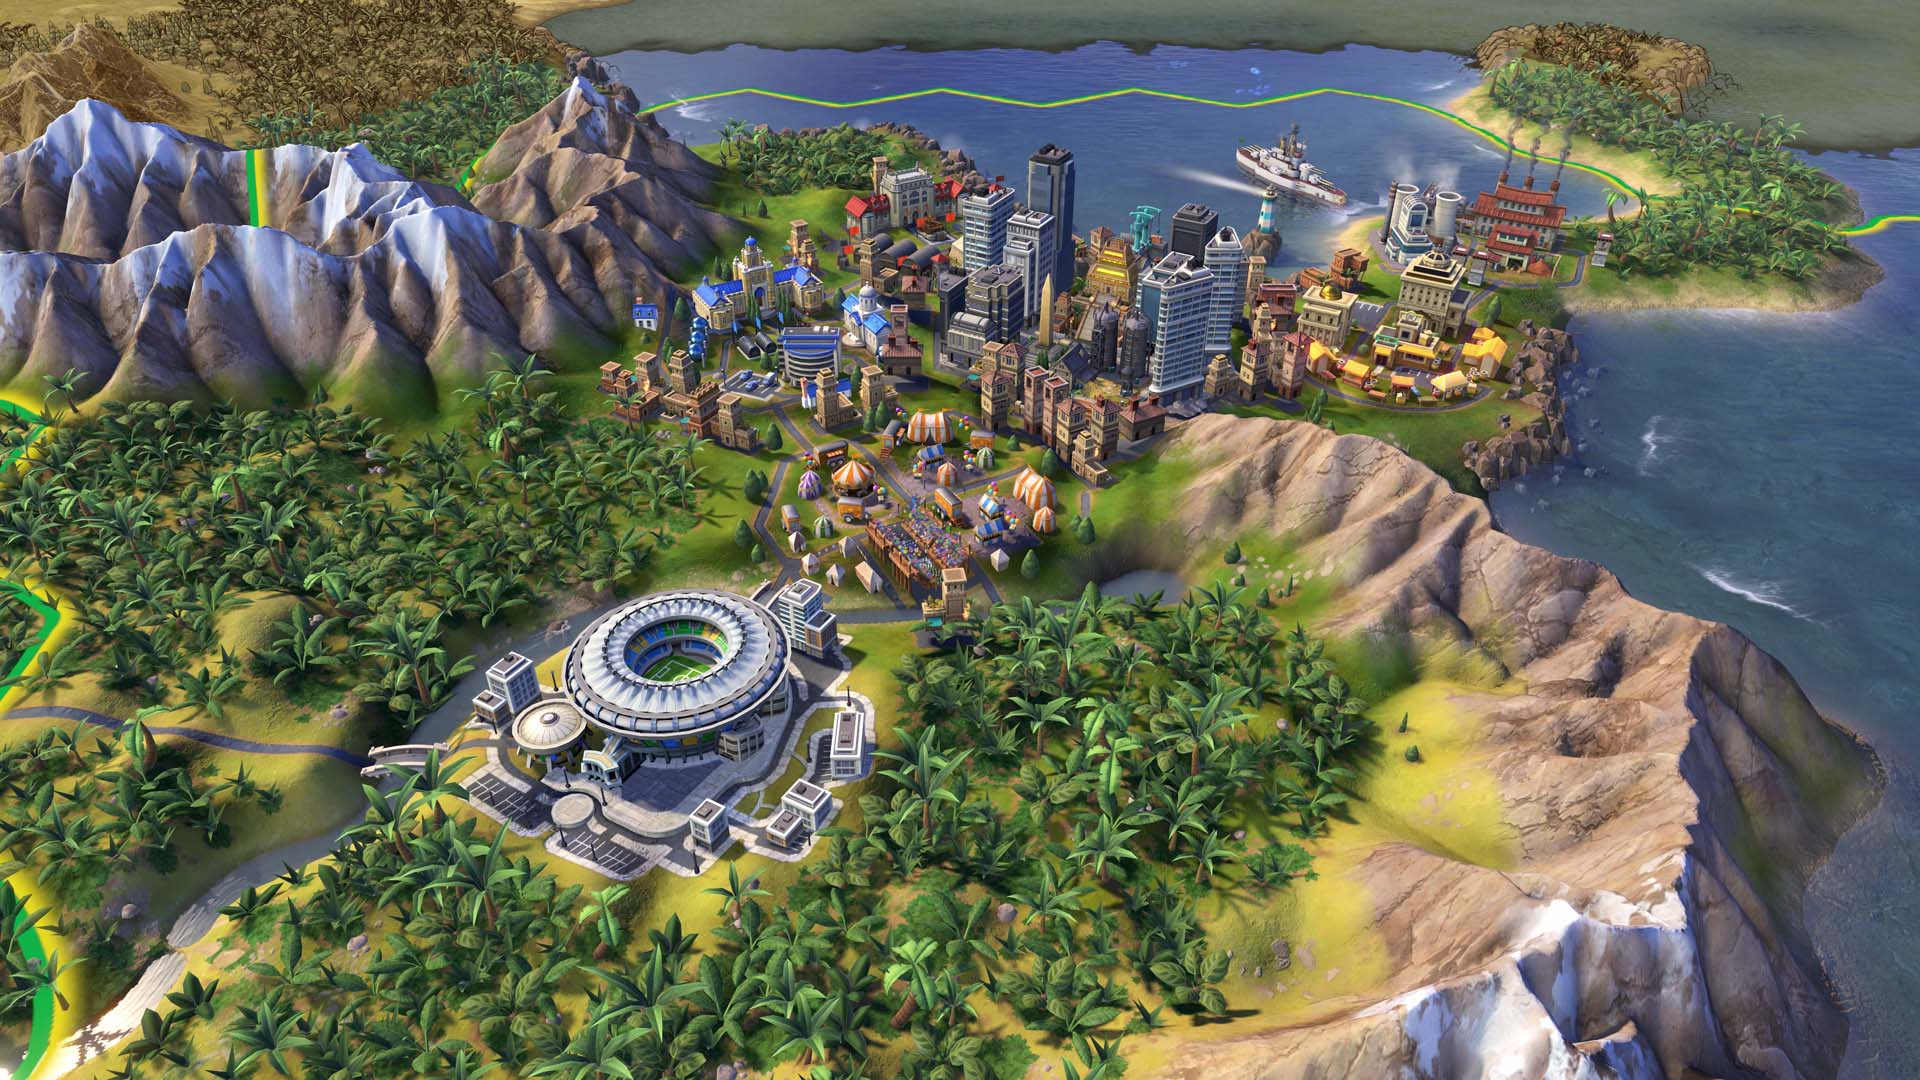 2KGMKT_CivilizationVI_Screenshot_Brazil_Carn_Estada_3